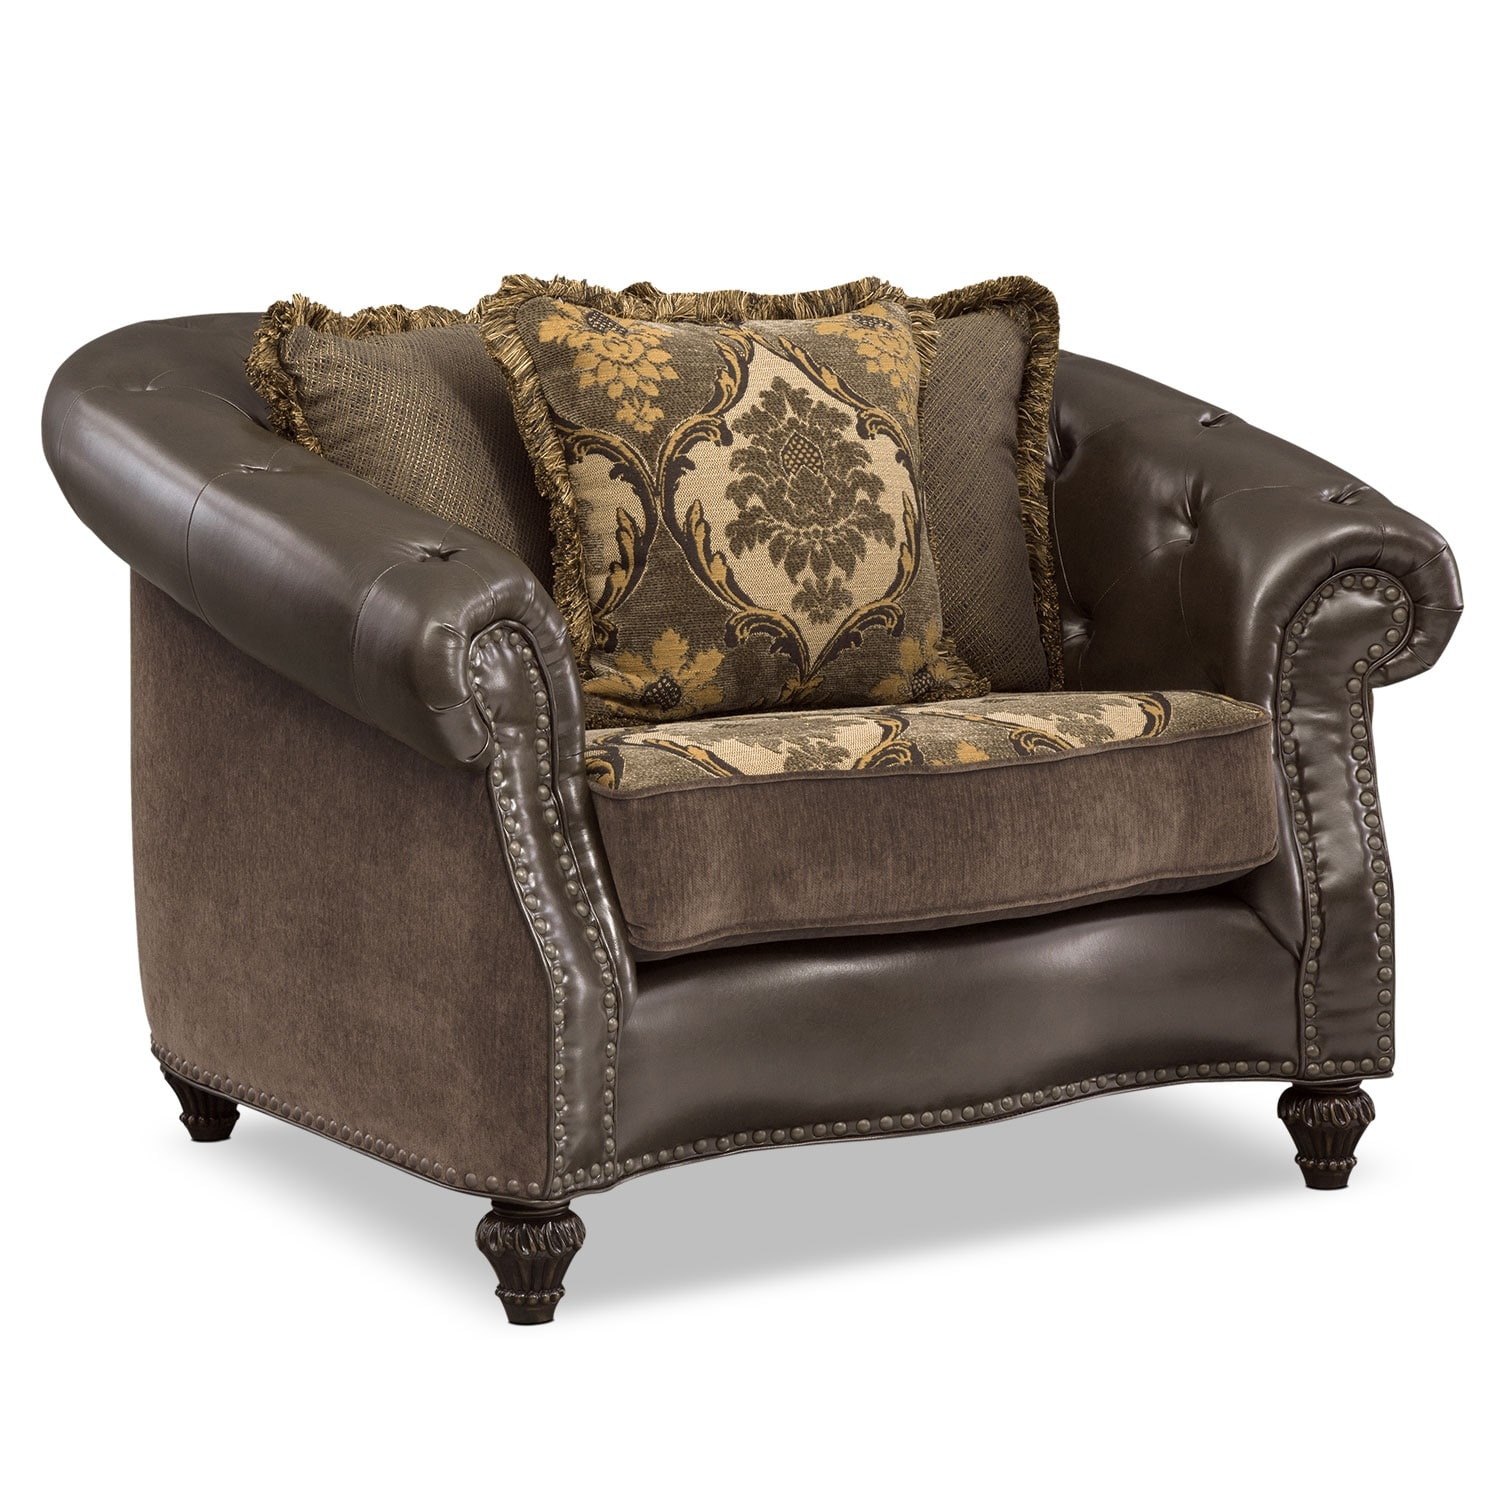 Living Room Furniture - Nicholas Chair